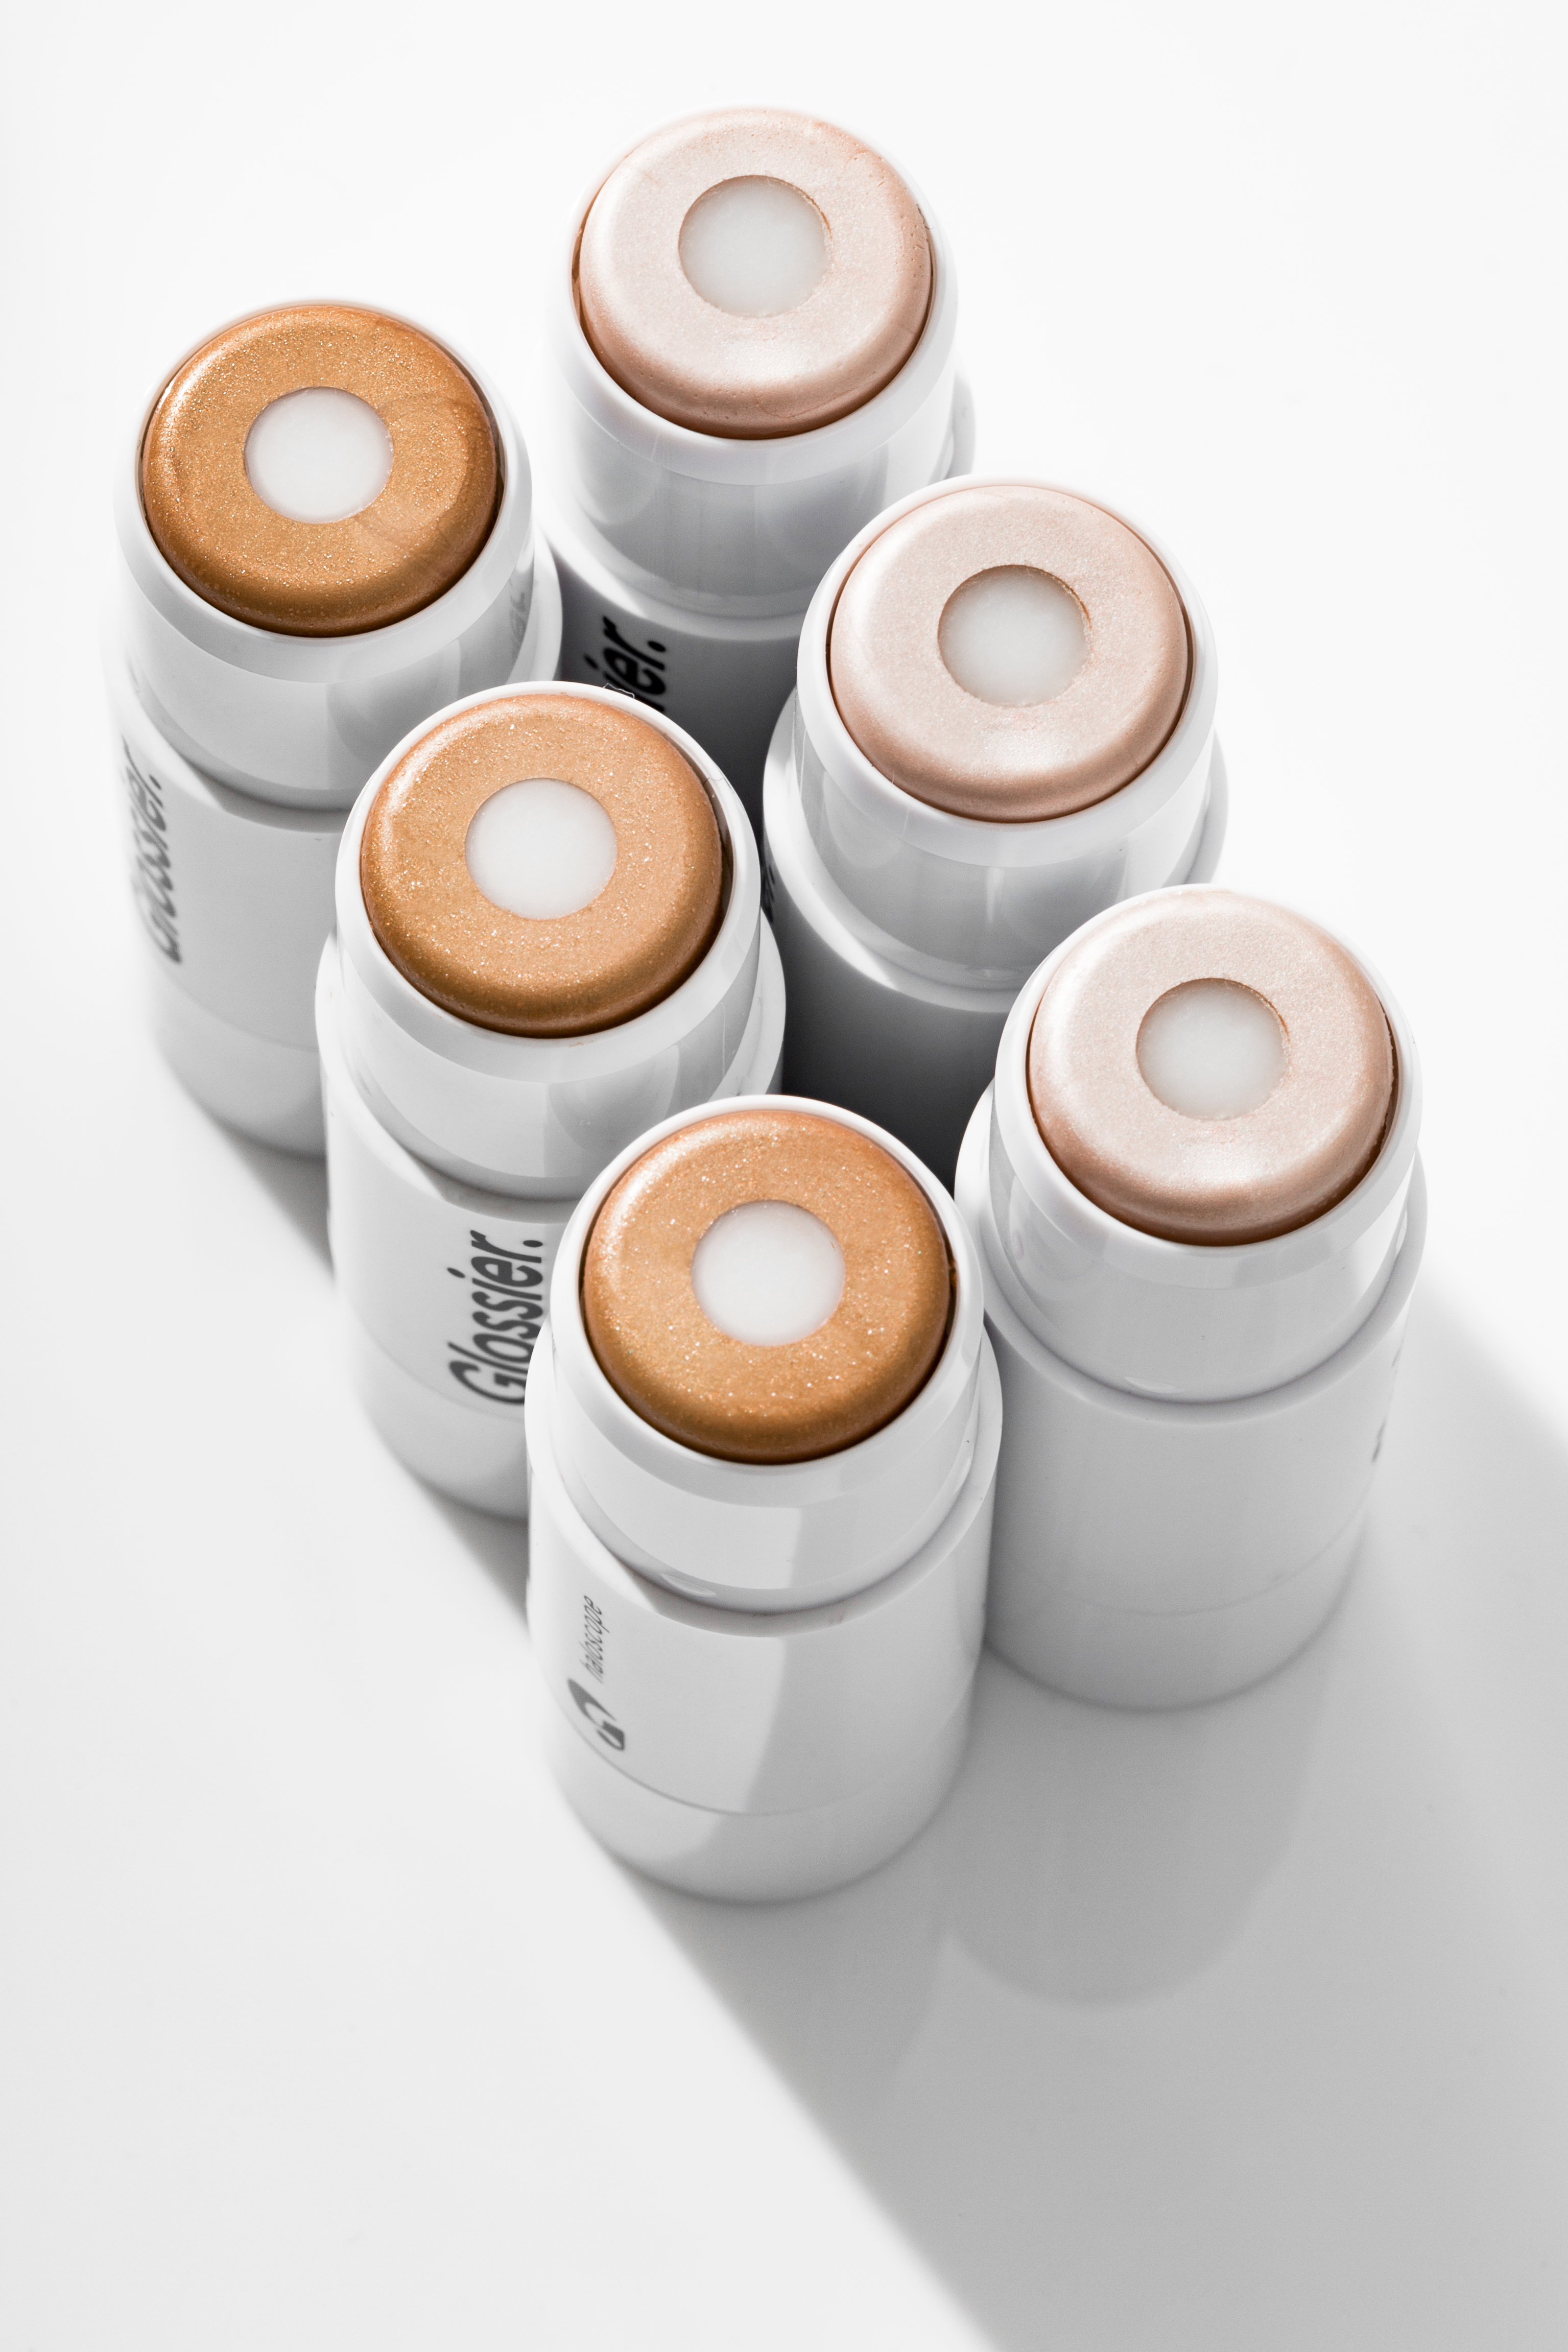 Introducing Glossiers Haloscope  Into The Gloss